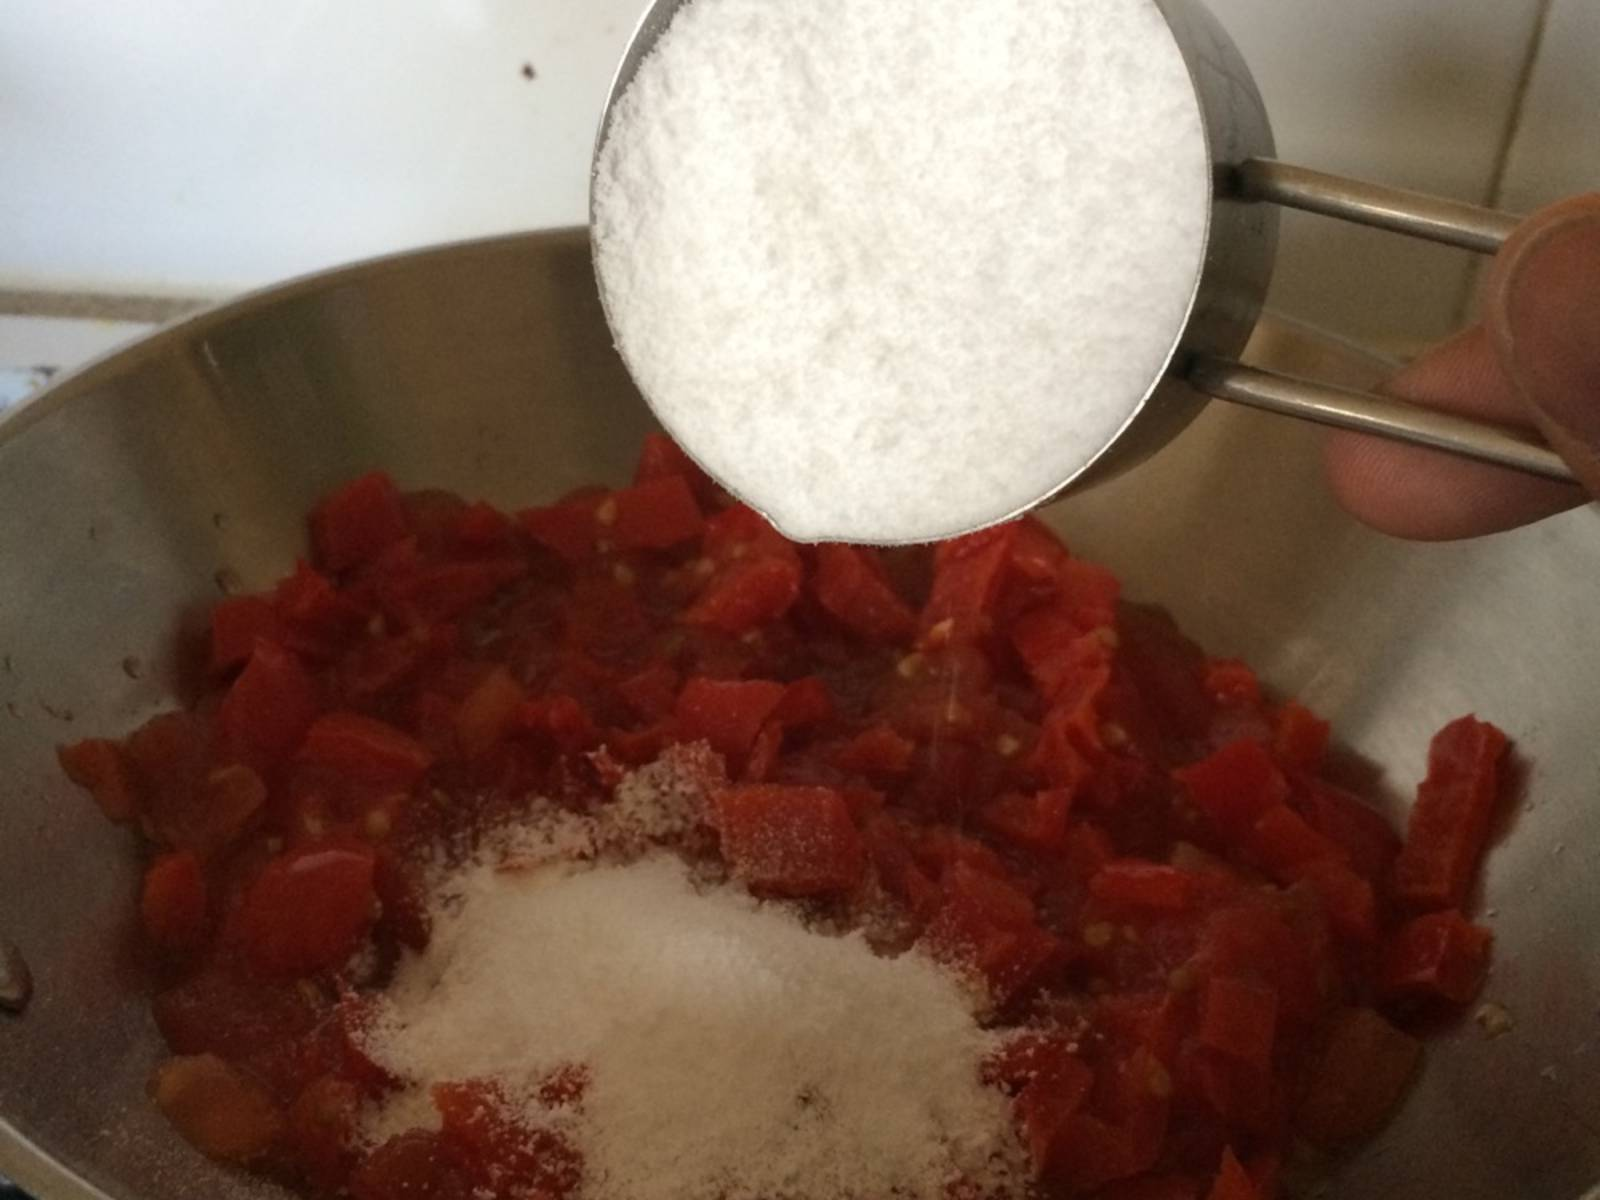 Sautée diced red pepper with stevia and cinnamon until excess water boils out.